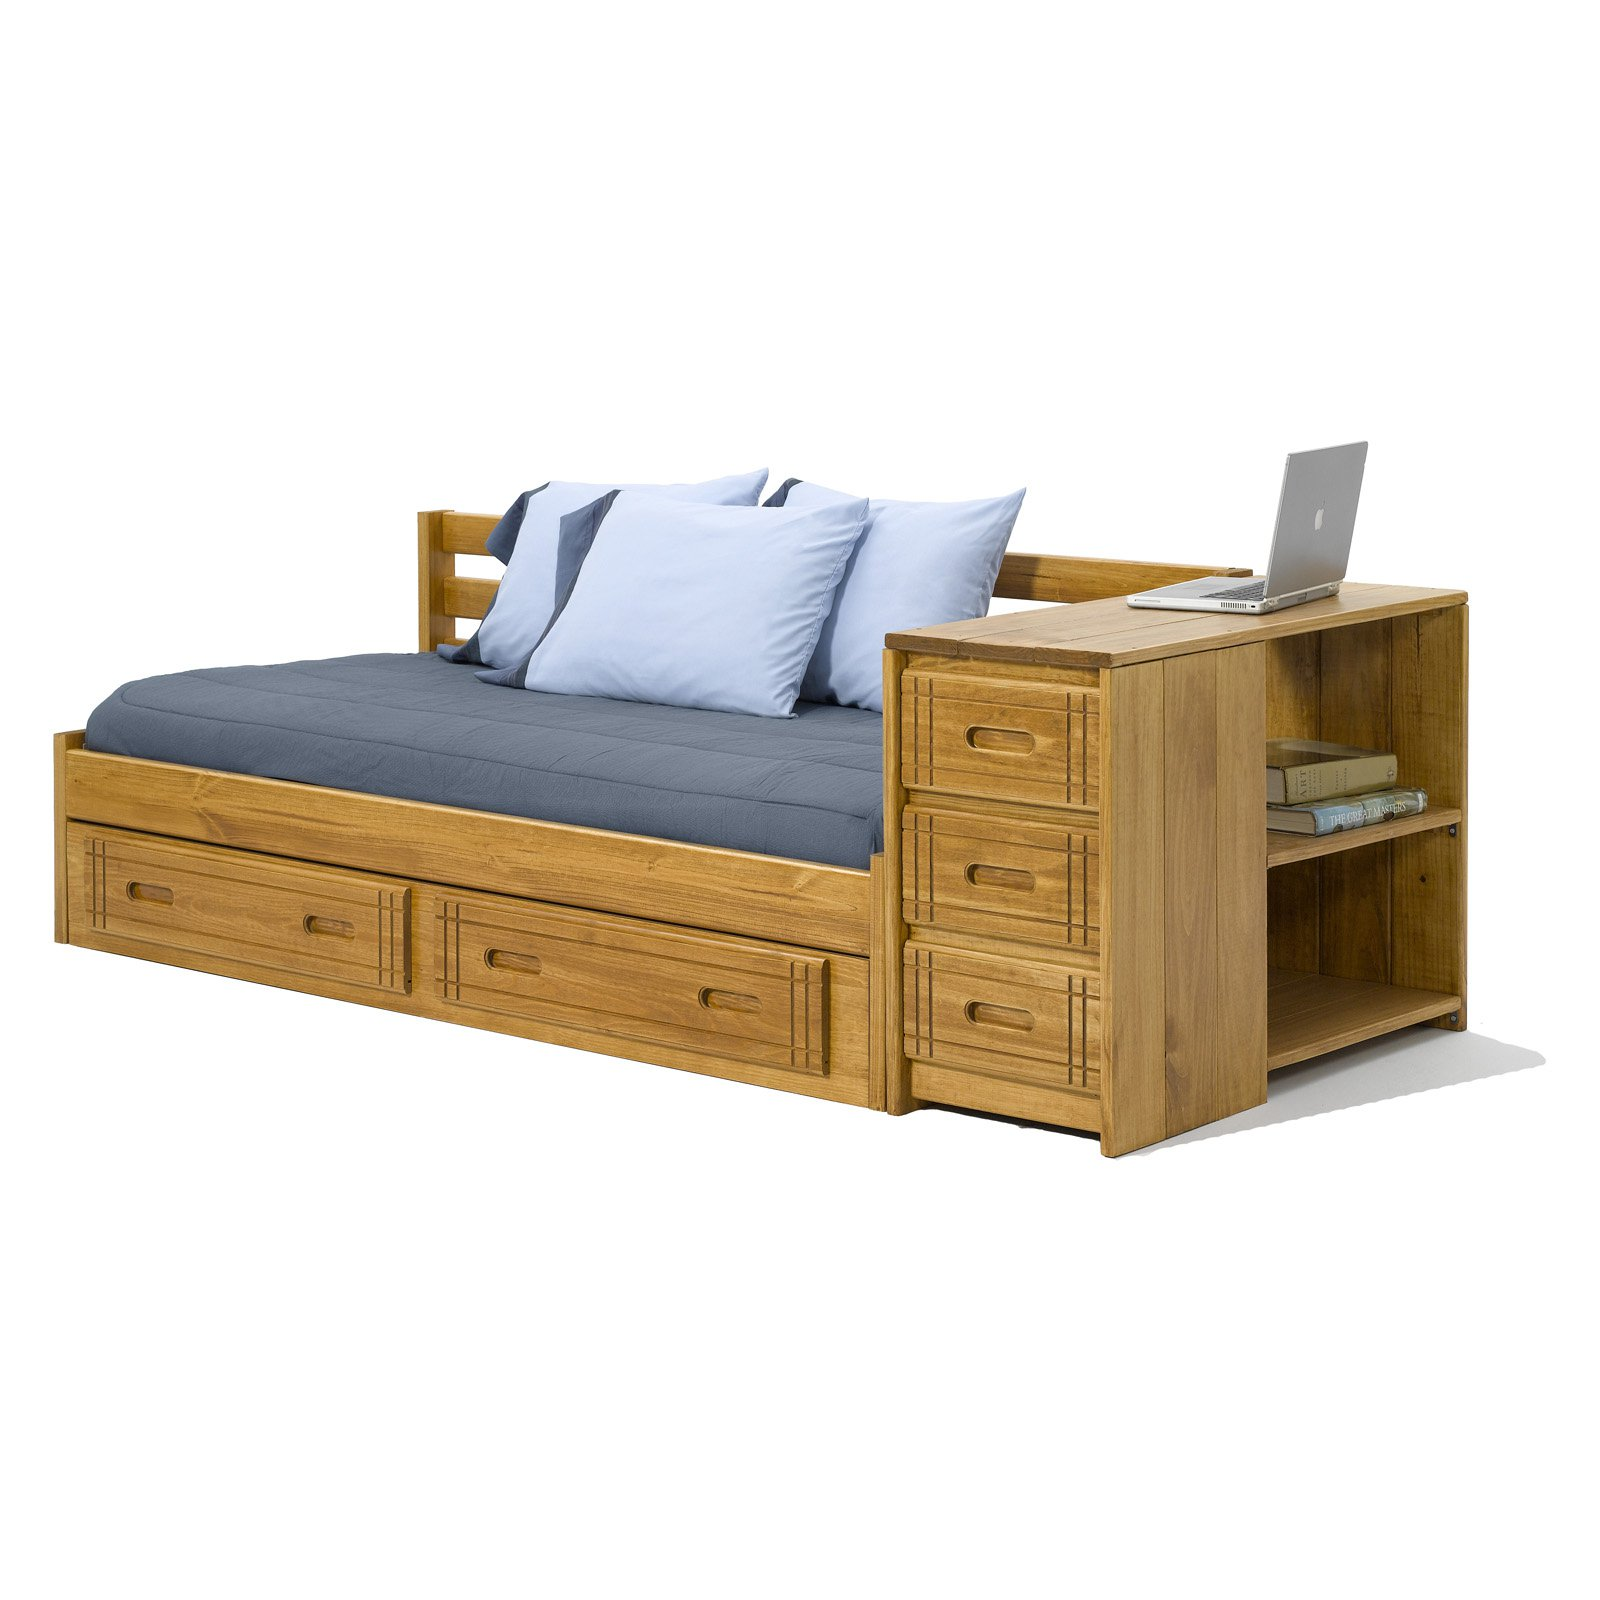 Attractive daybed with storage for small bedroom design with full size daybed with storage